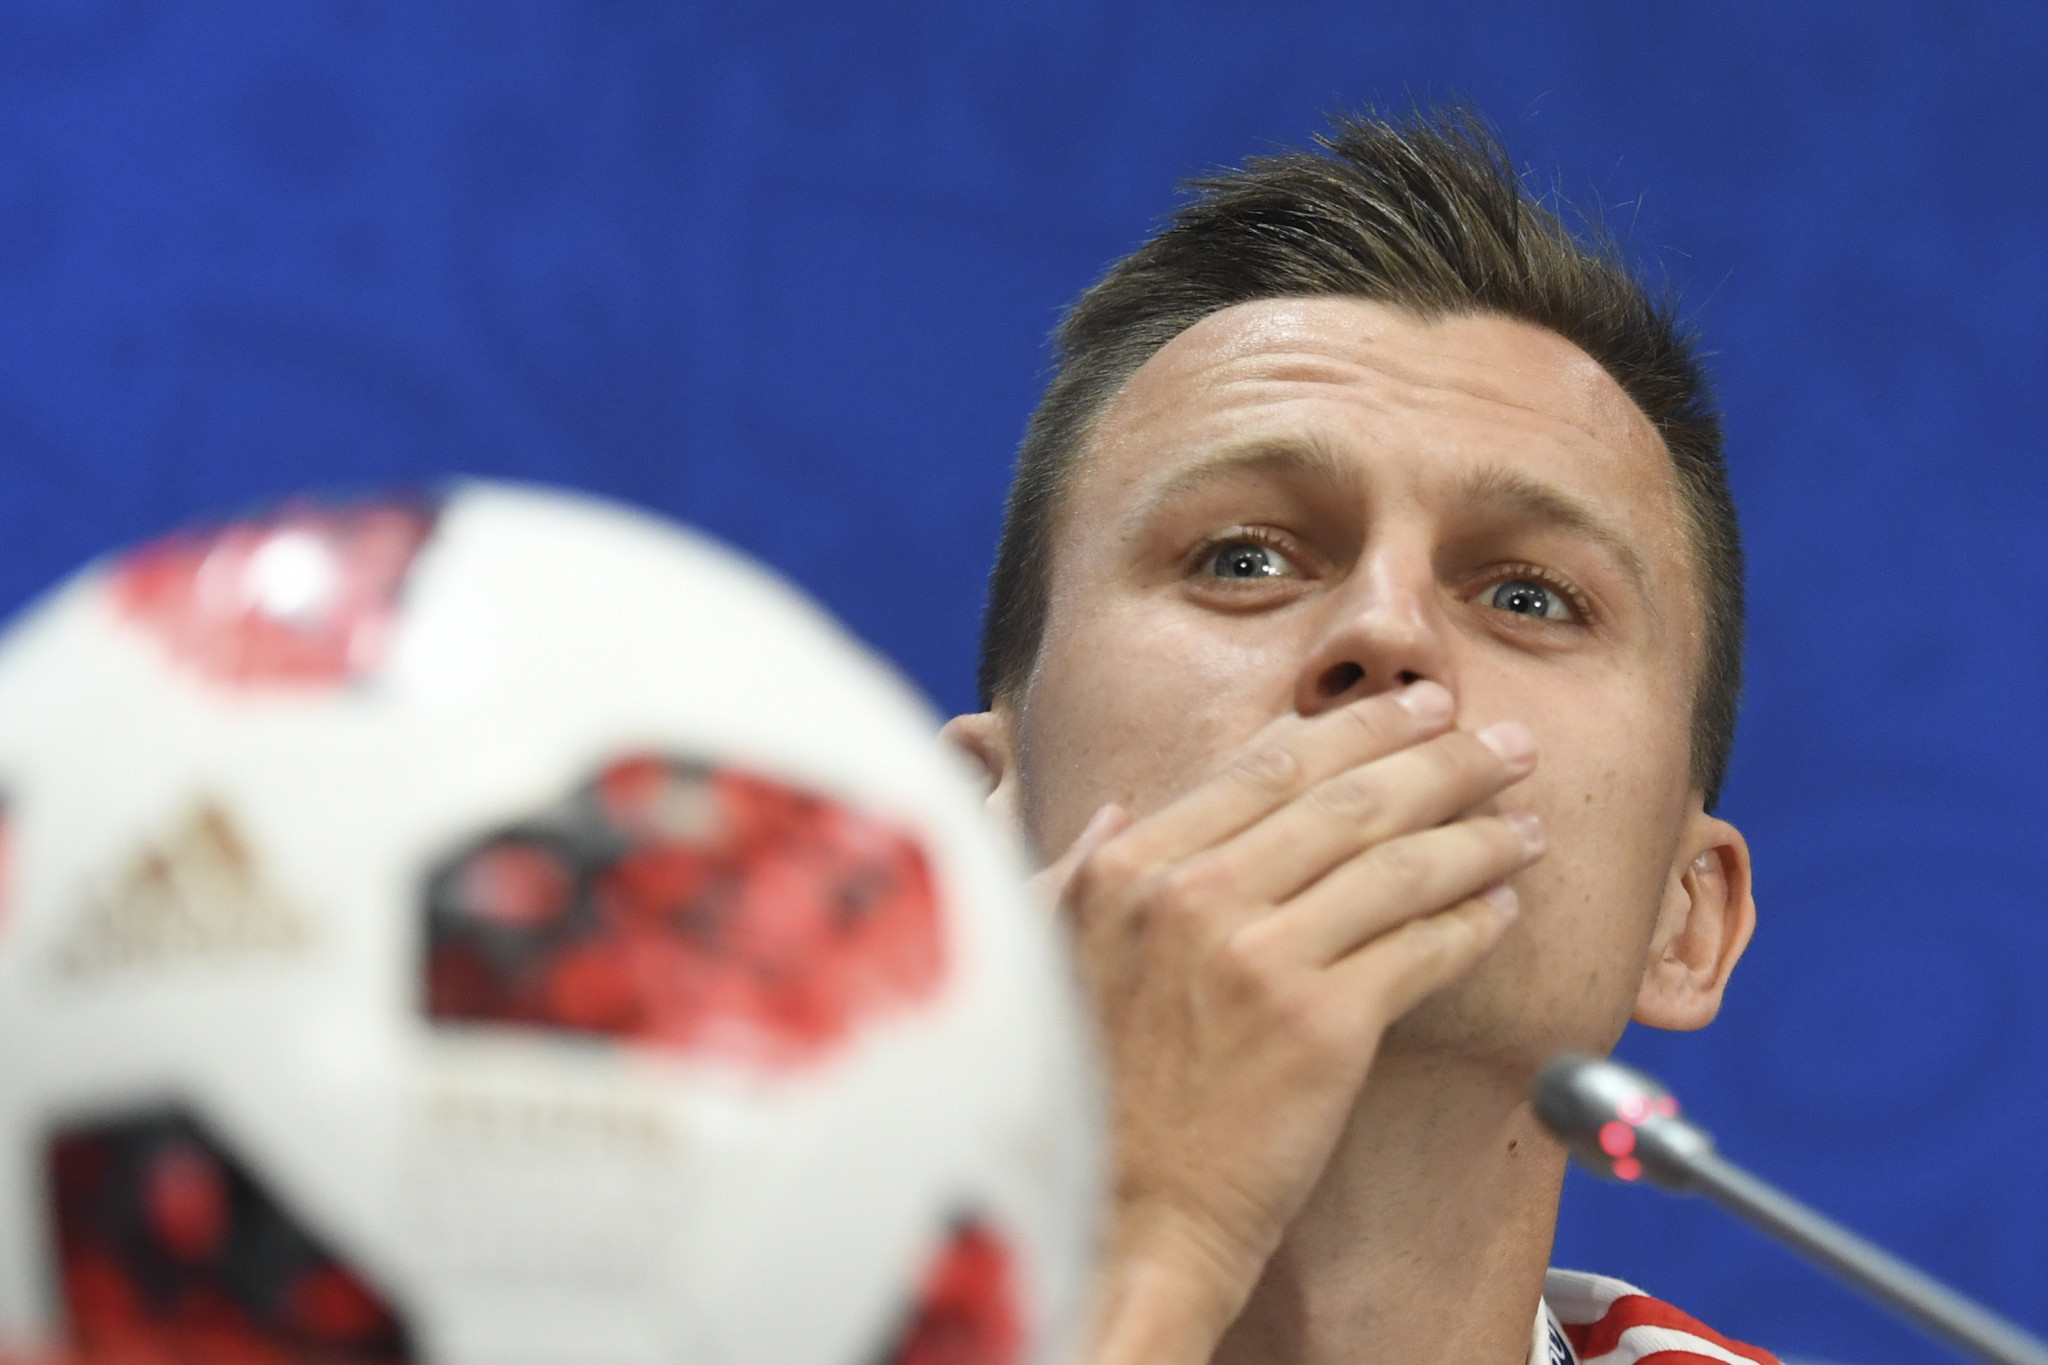 World Cup star Cheryshev denies doping after father says he was injected with growth hormone